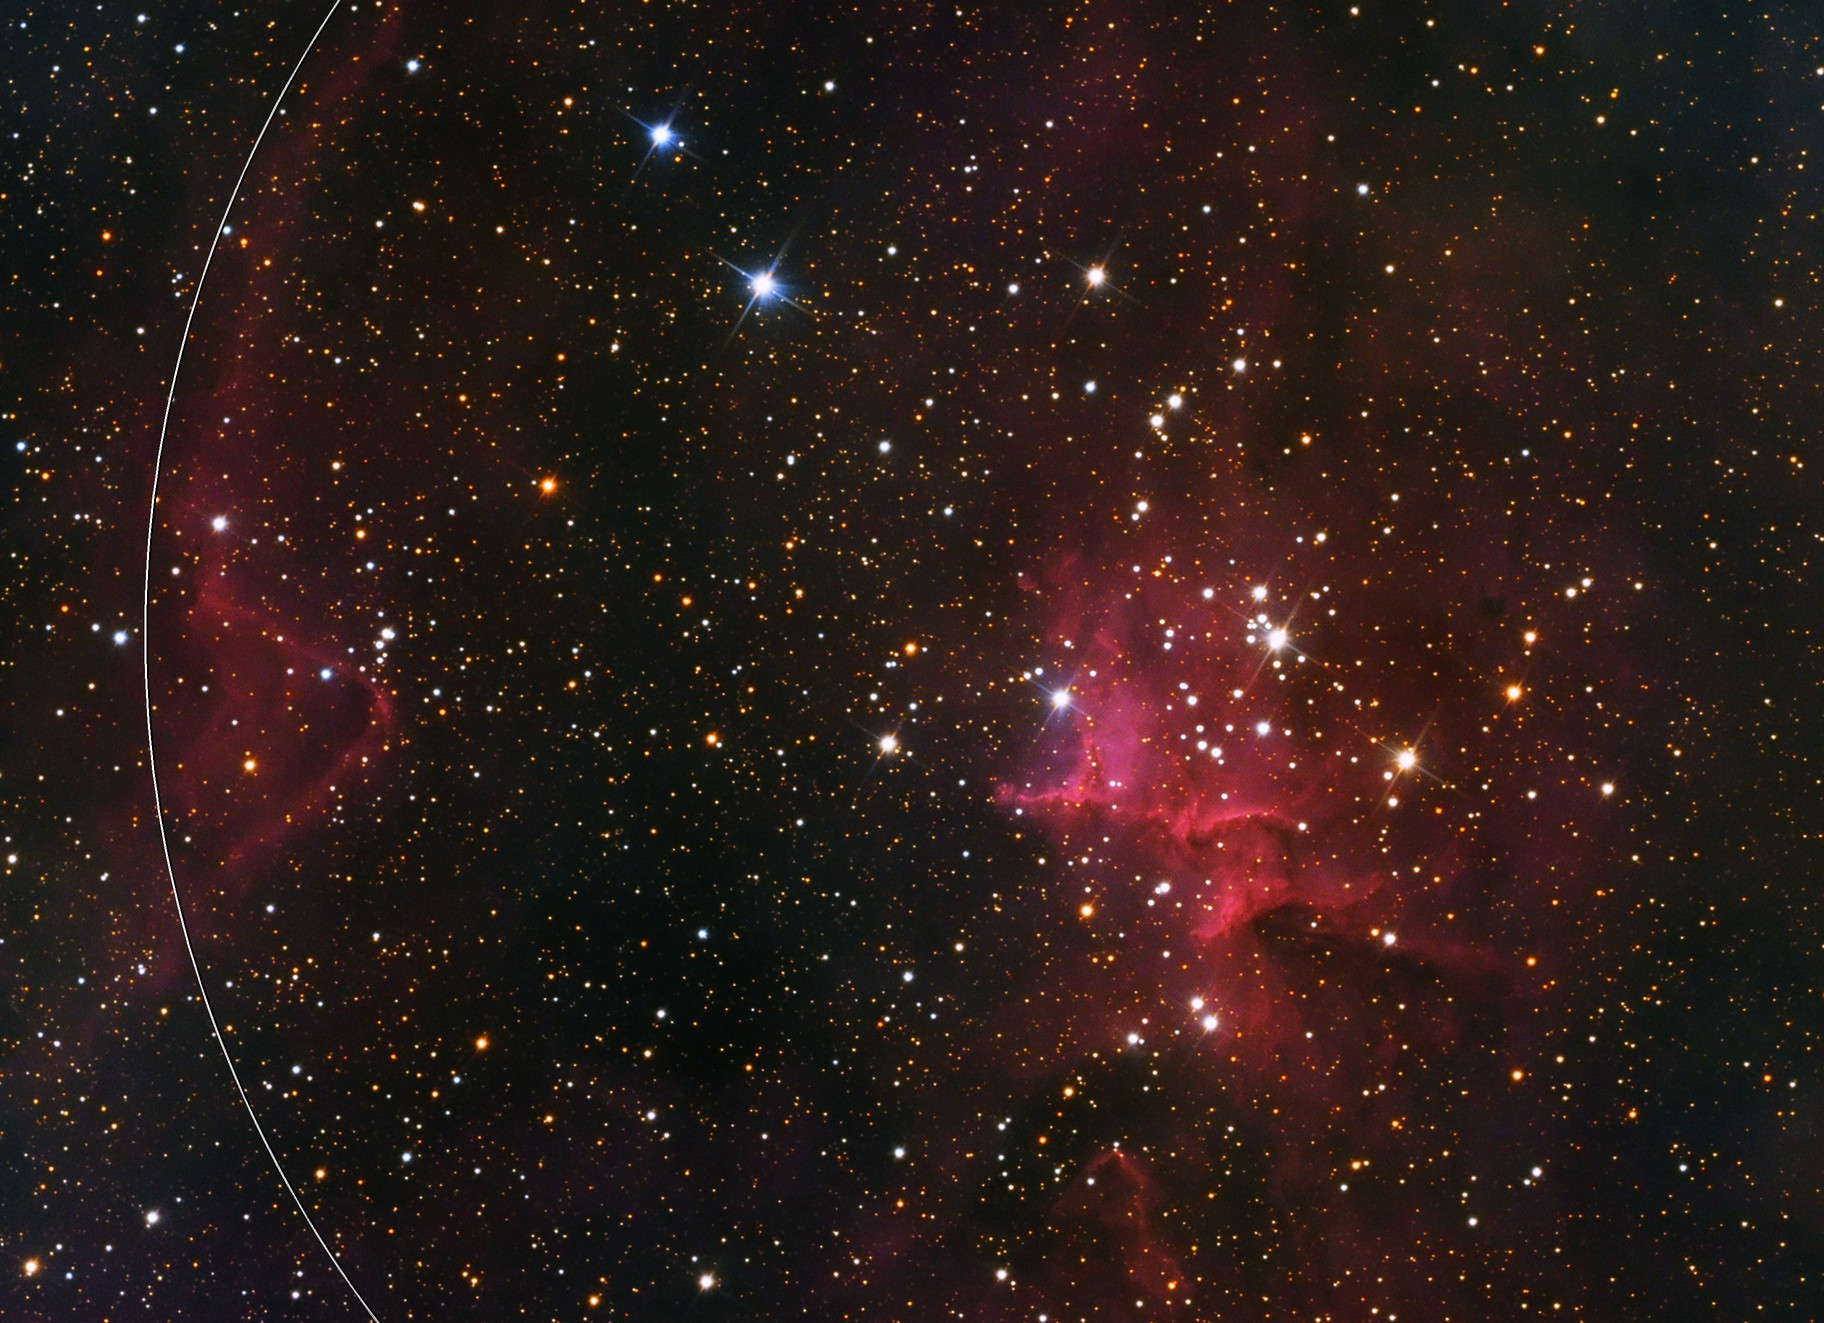 Melotte 15 in the heart of hearts